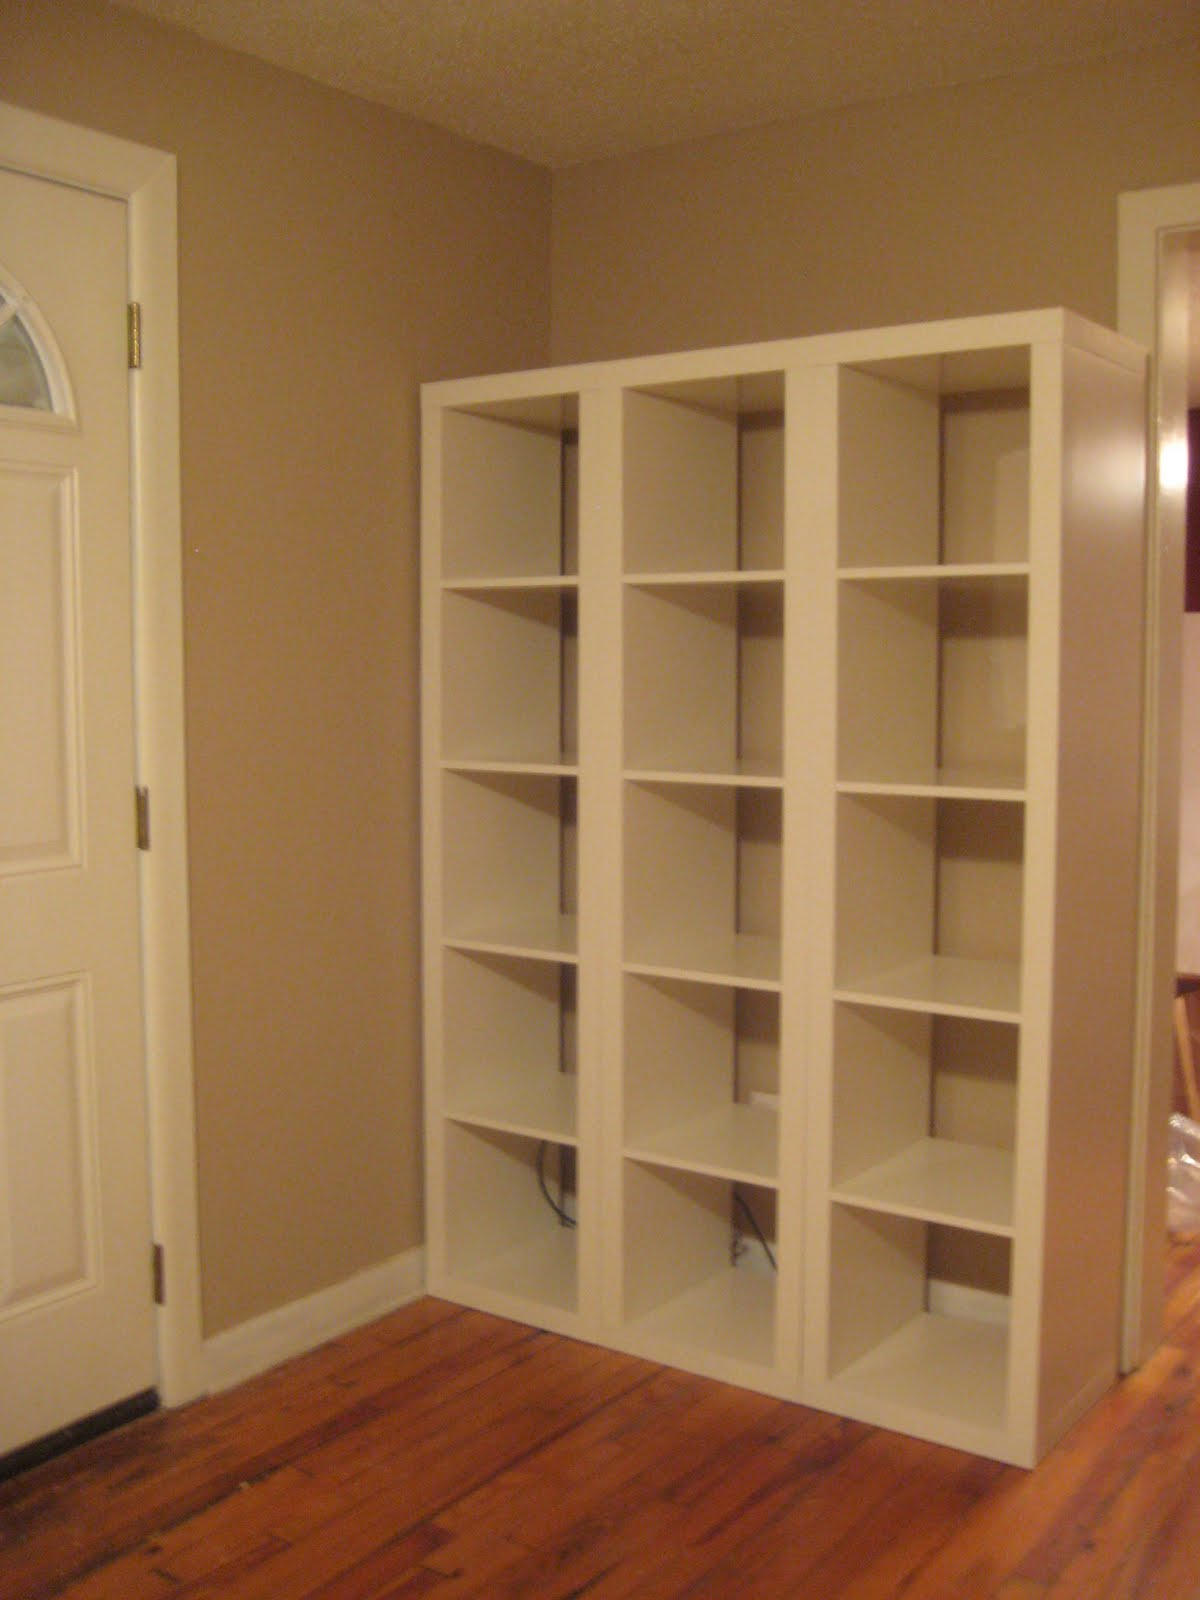 Ikea Patrull Schutzgitter Erfahrung ~   front door, we opted to purchase 3 individual Expedit Shelving Units